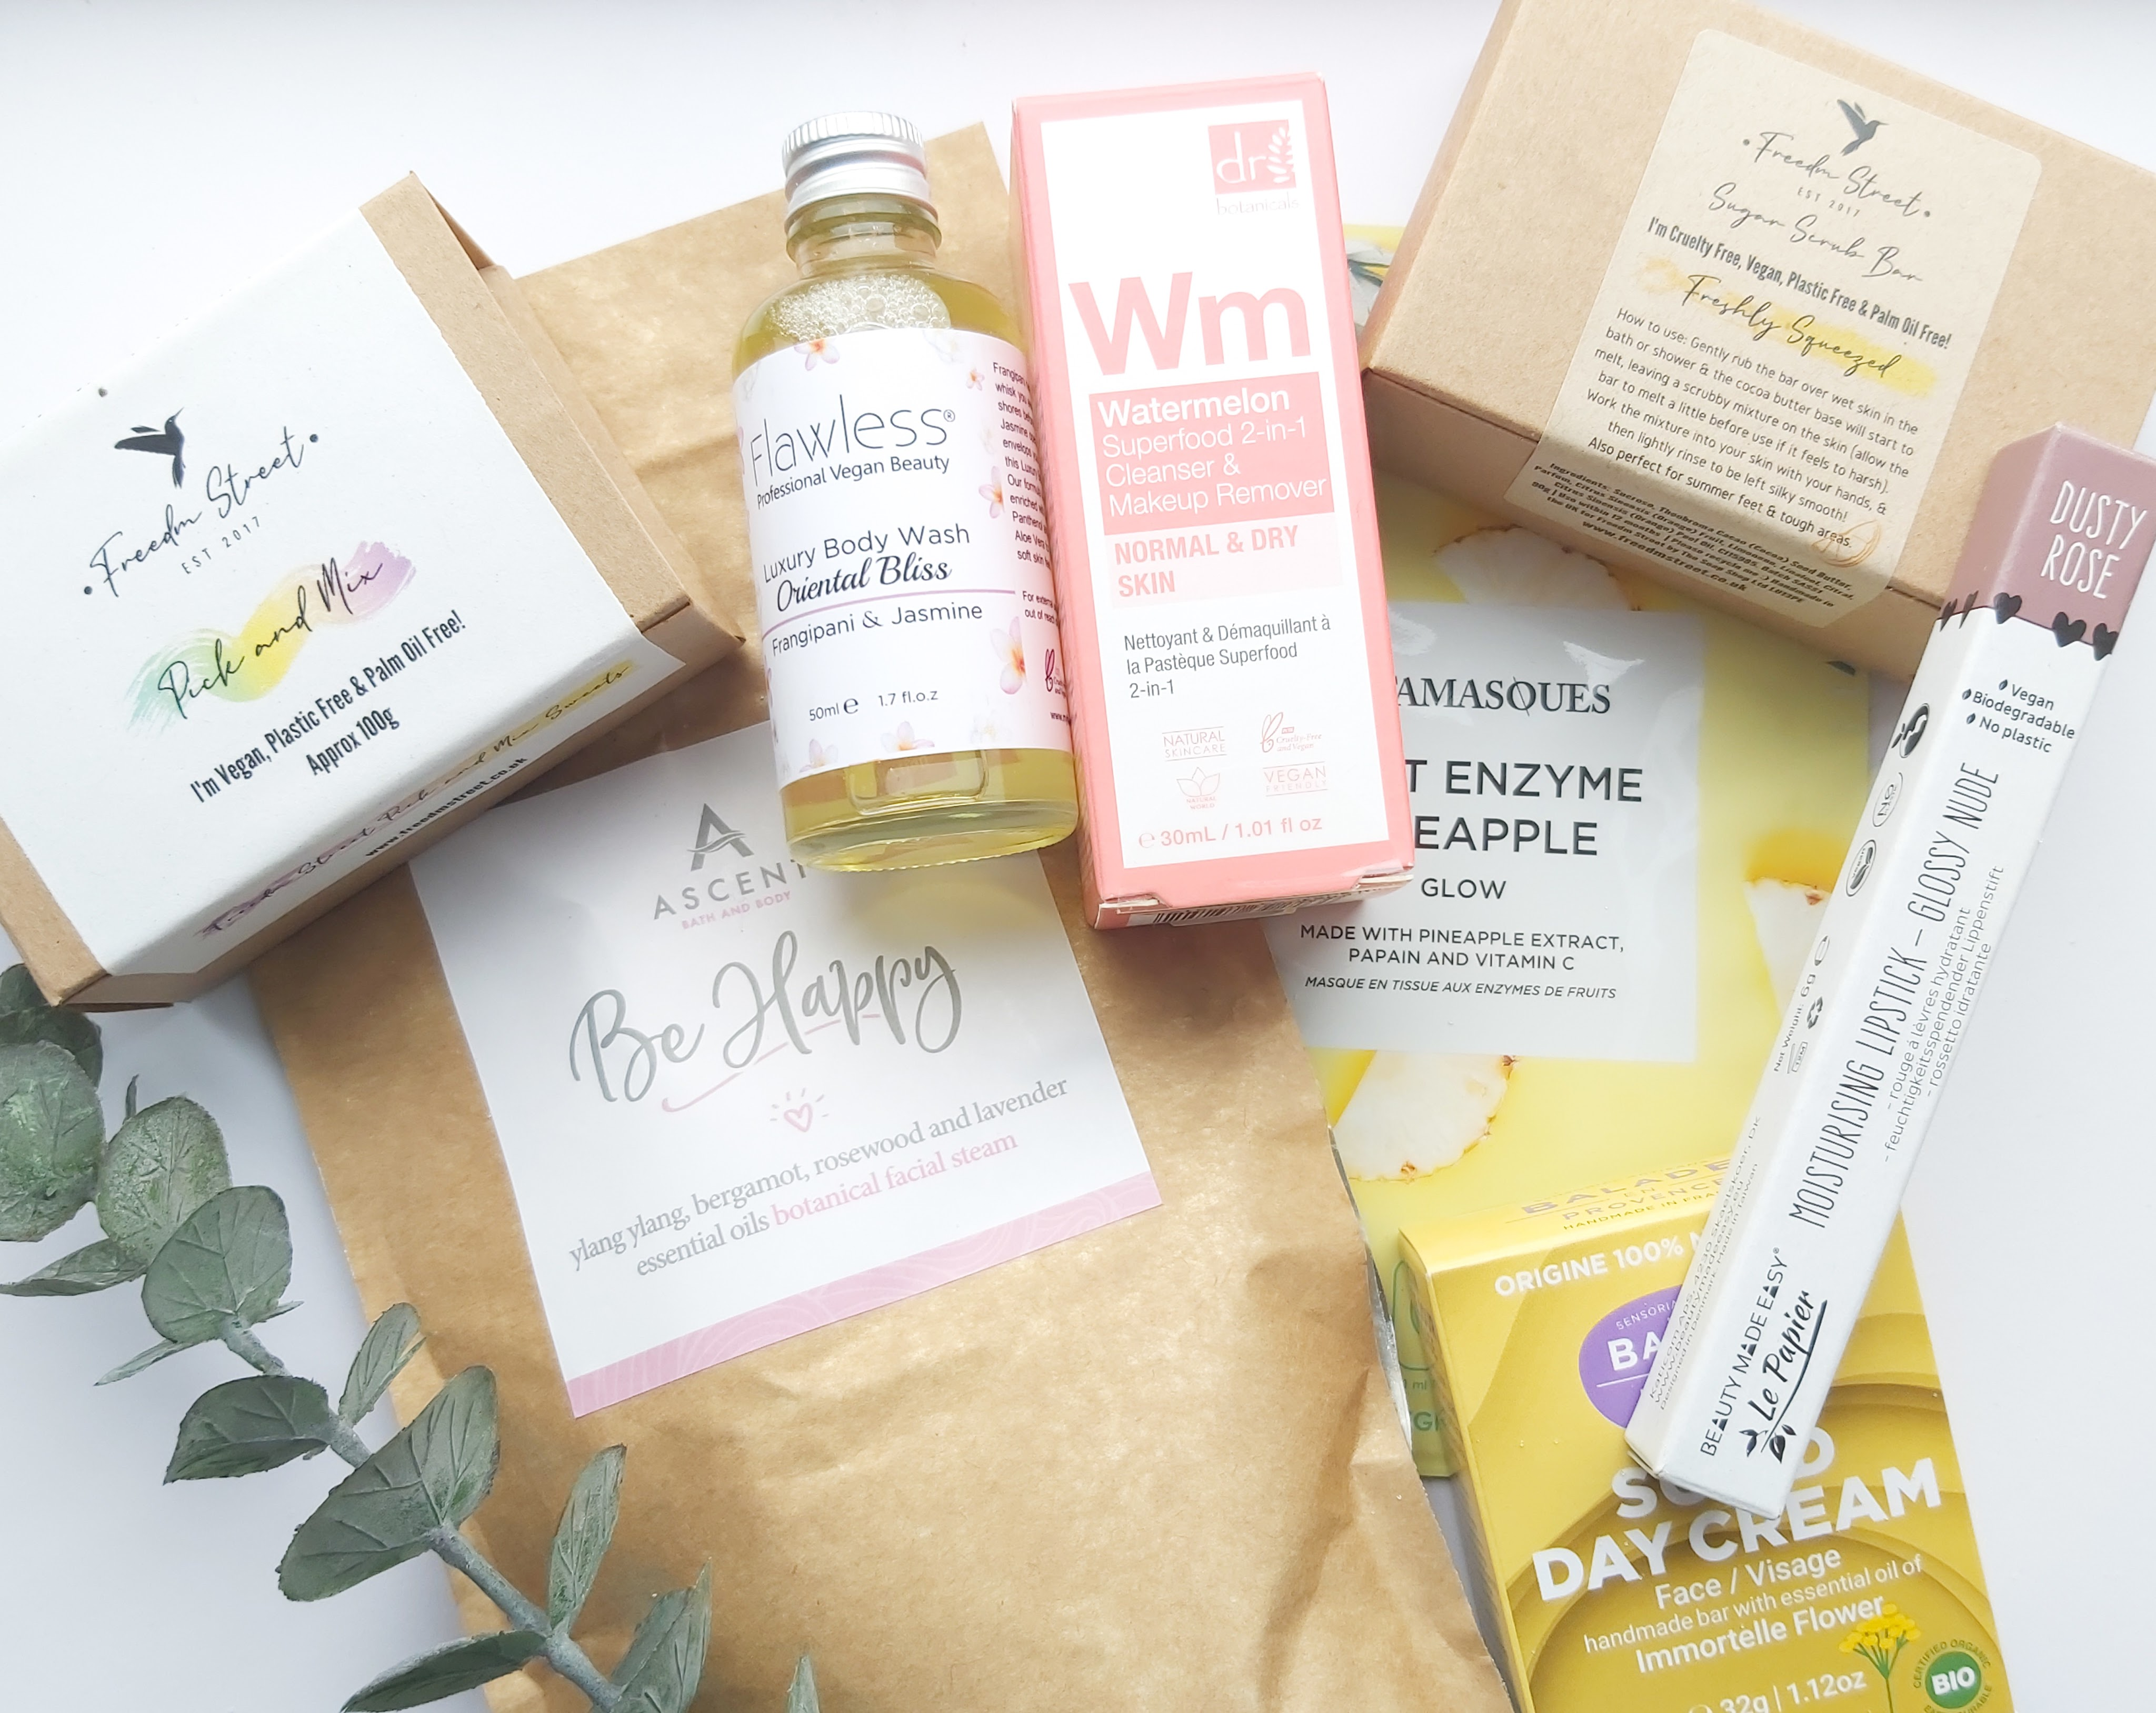 All the items from the Freedm Street Original Box laid out together with a stem of Eucalptus - Review by Beauty Folio